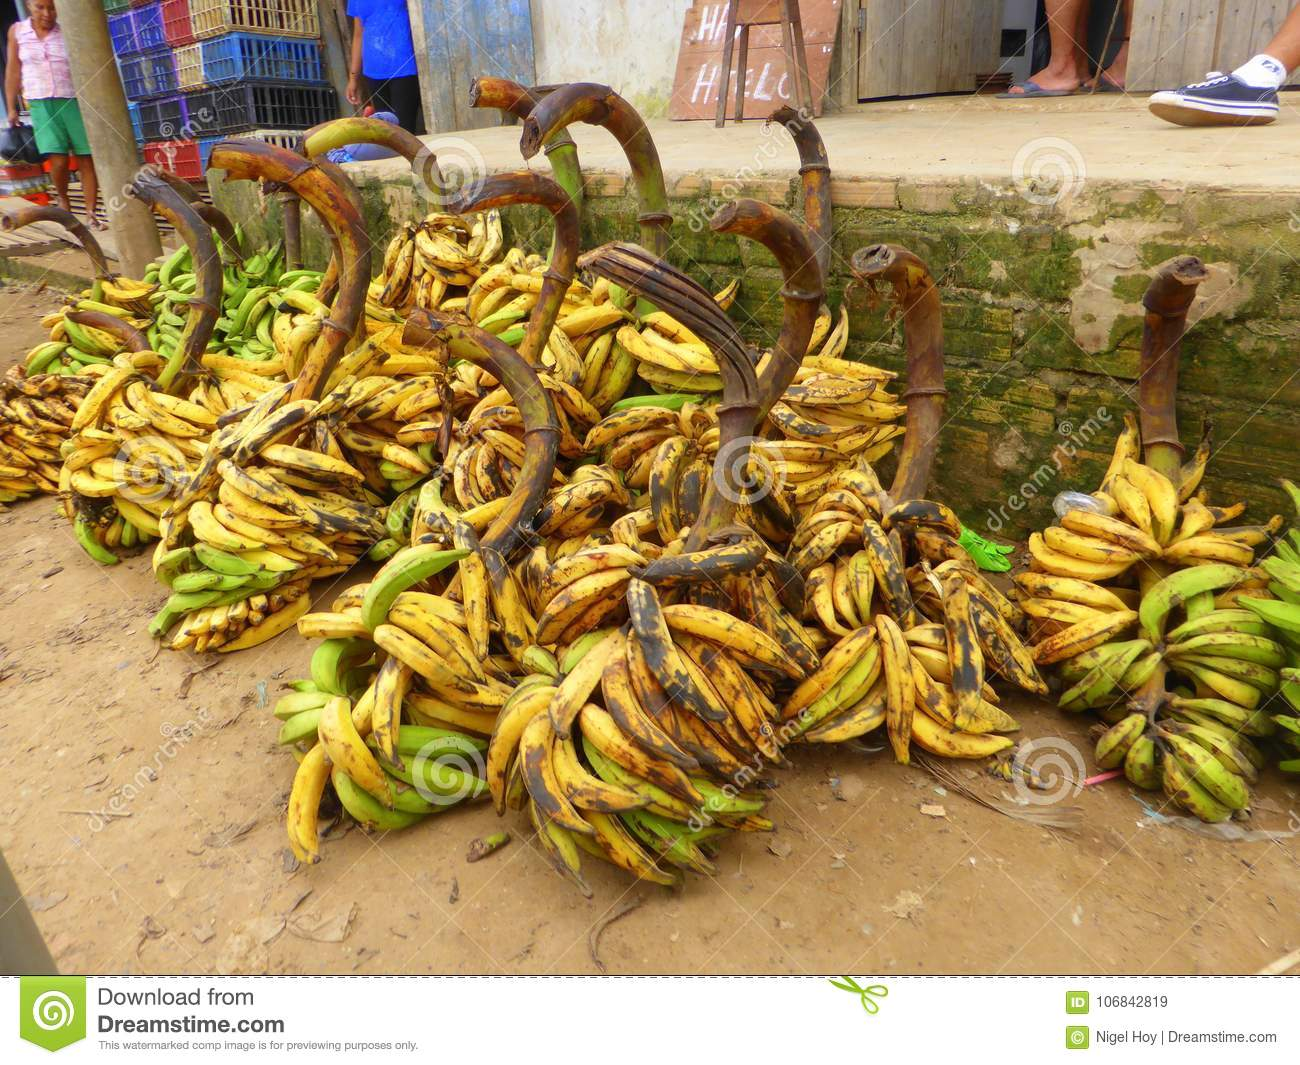 Bunches of over ripe bananas